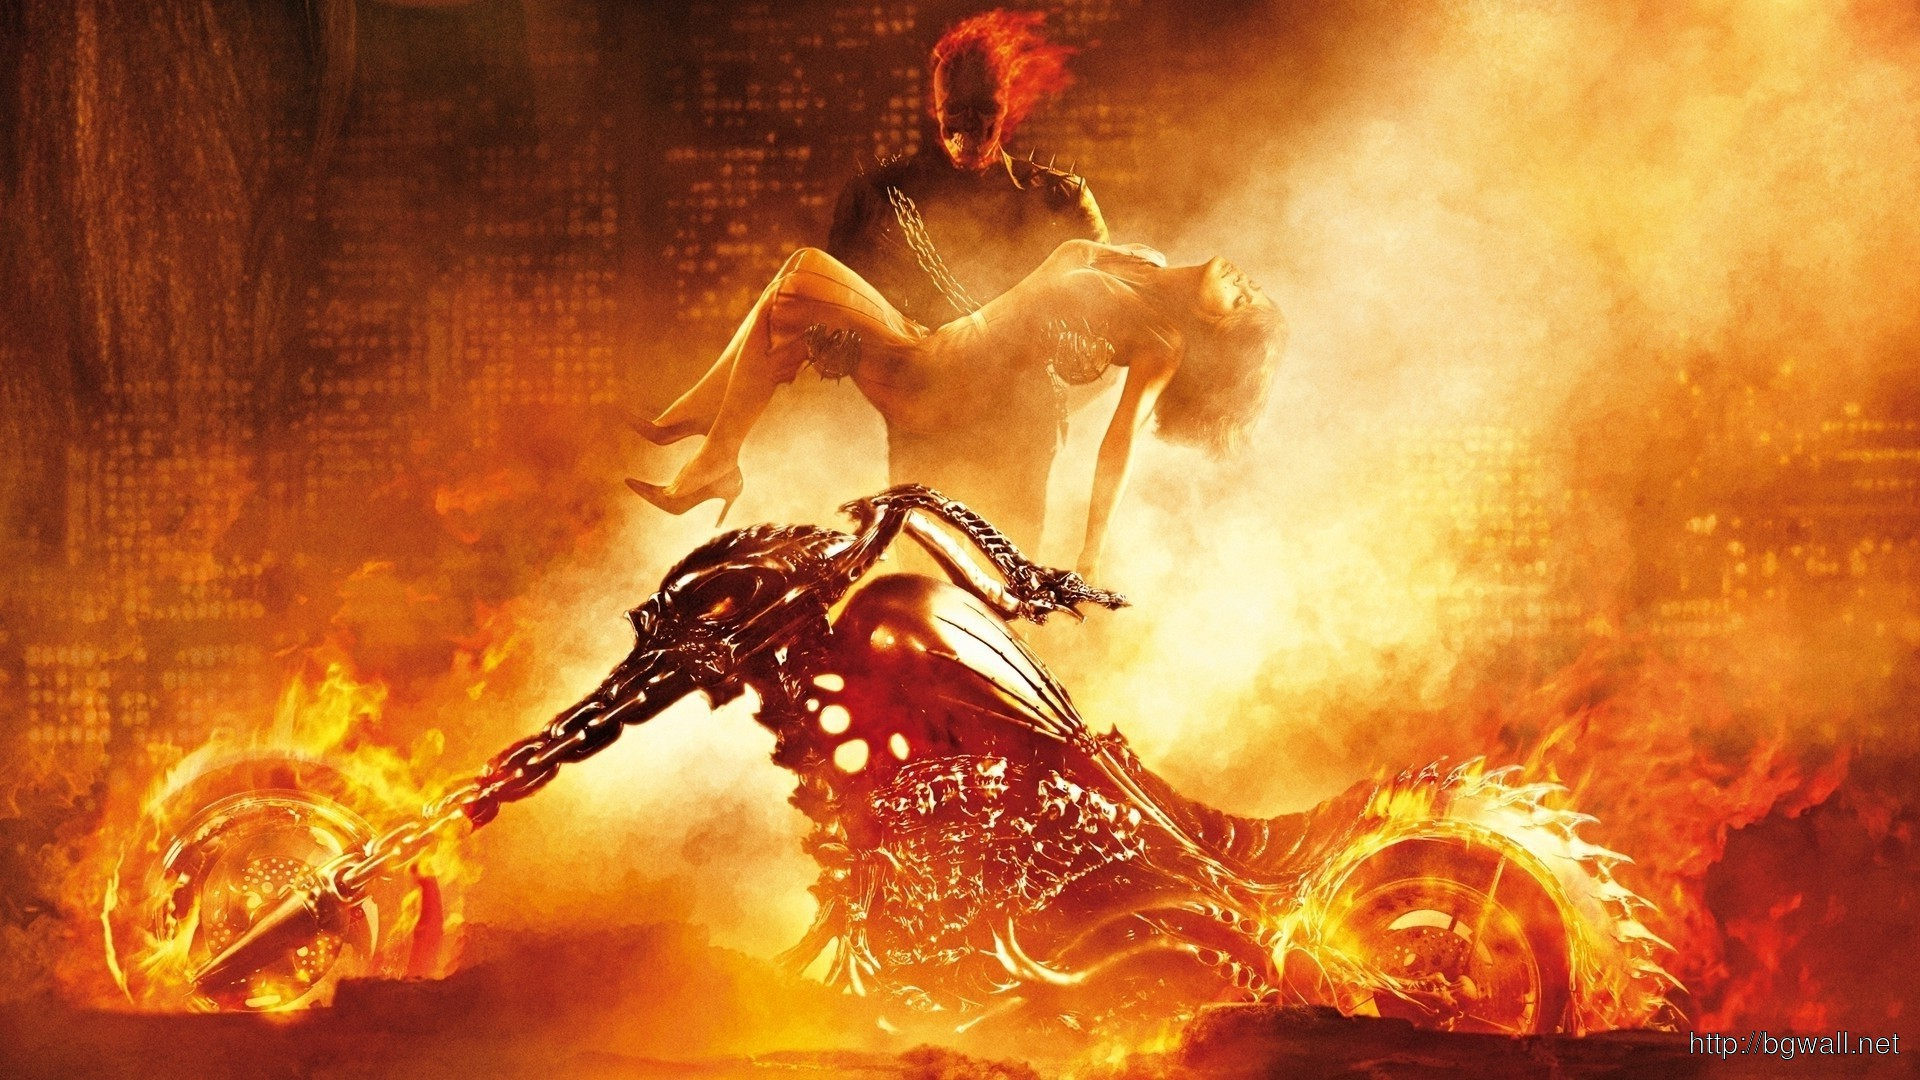 Ghost Rider Wallpaper 9576 Full Size